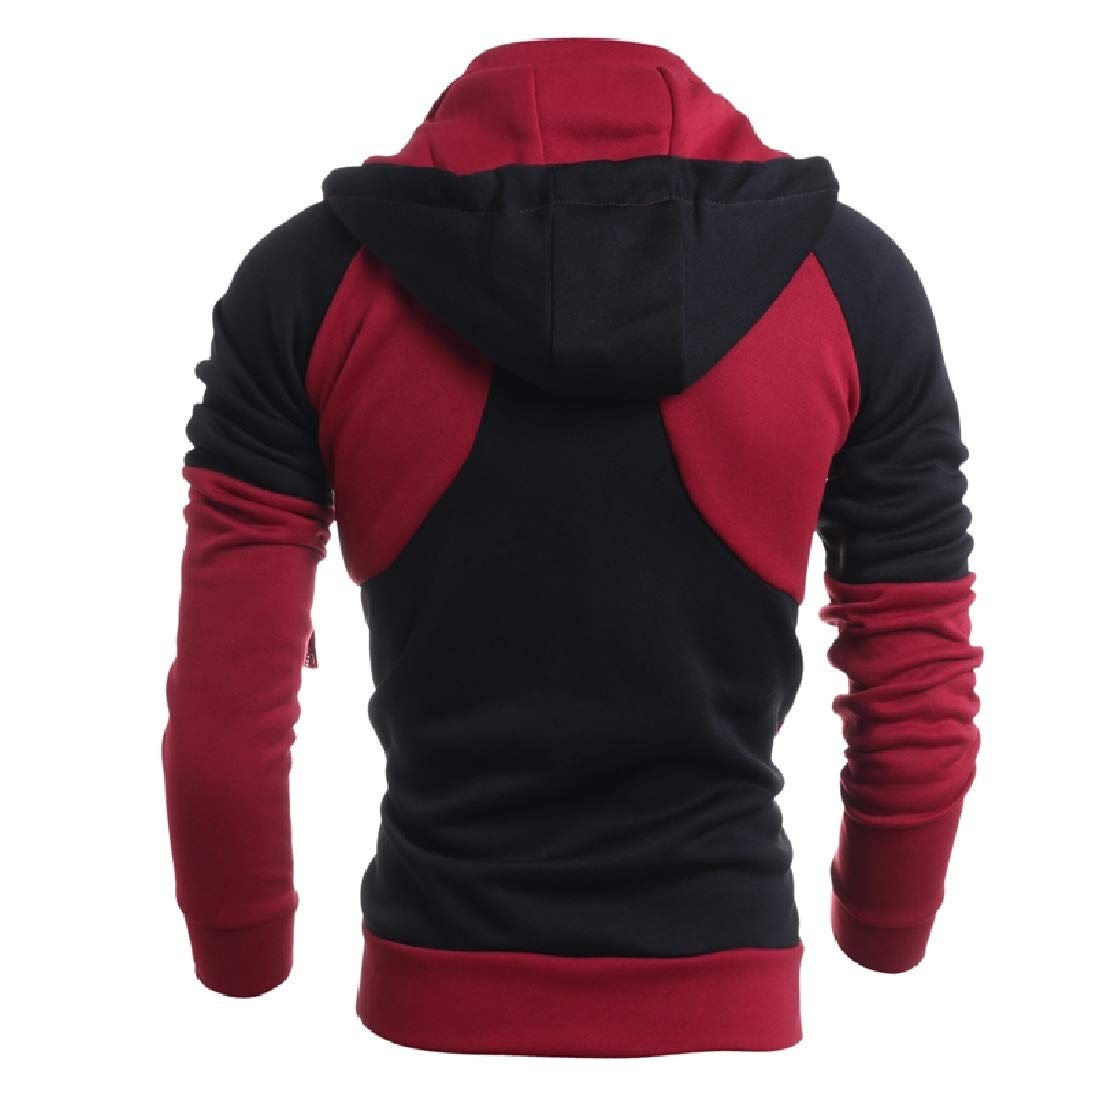 Comaba Mens Mid Long Fake Two Hooded Oversize Outwear Sweatshirt